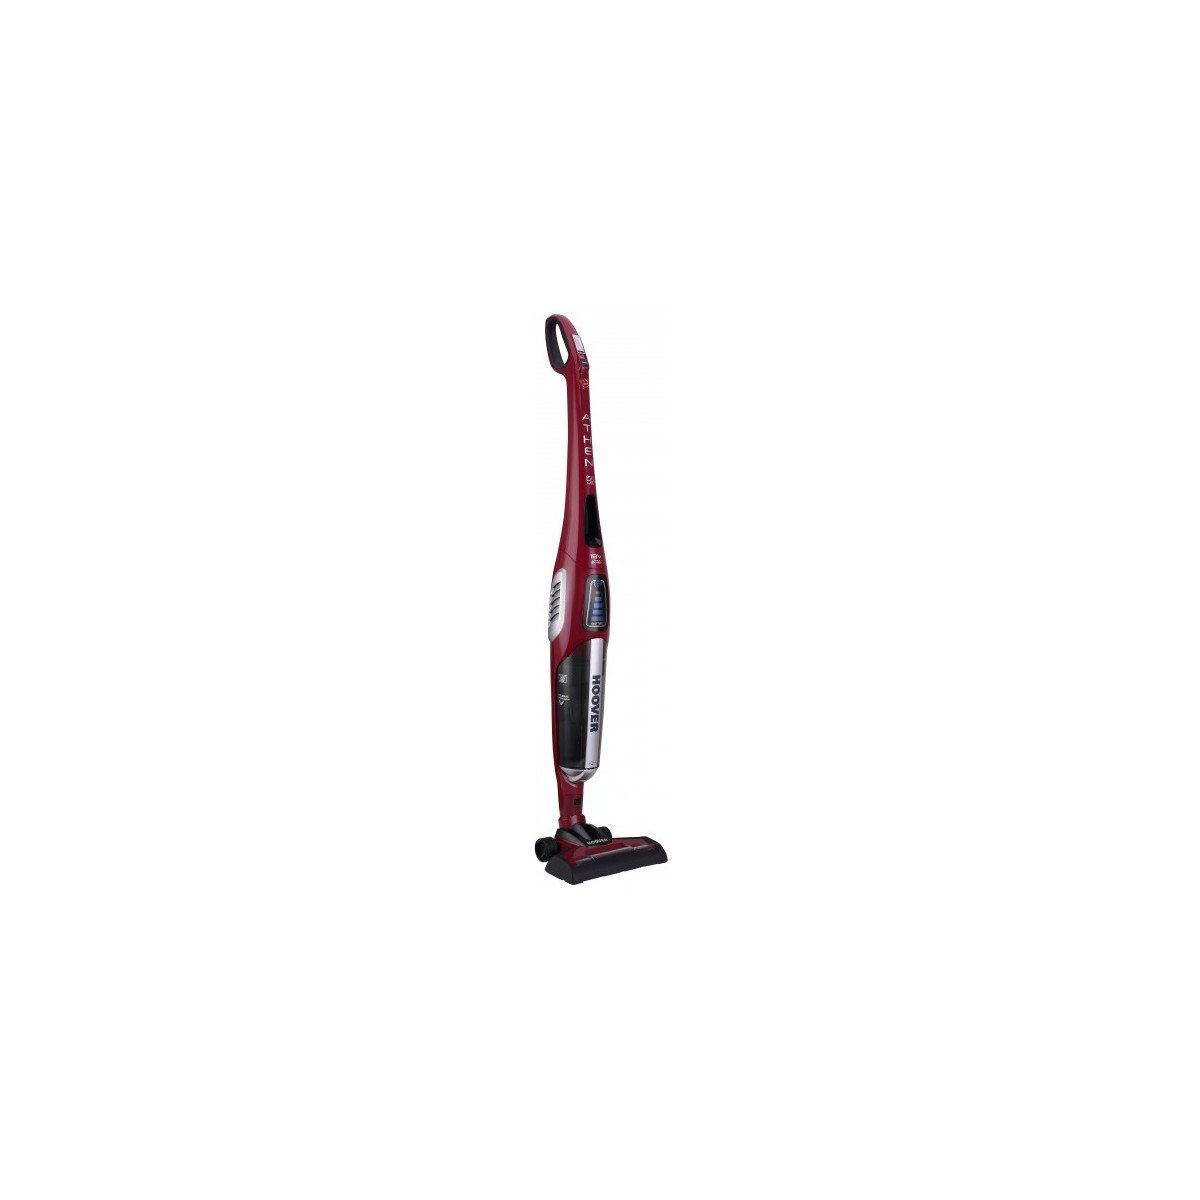 HOOVER - Aspirateurs balai ATN 18 LF 011 -: Amazon.fr: Cuisine & Maison